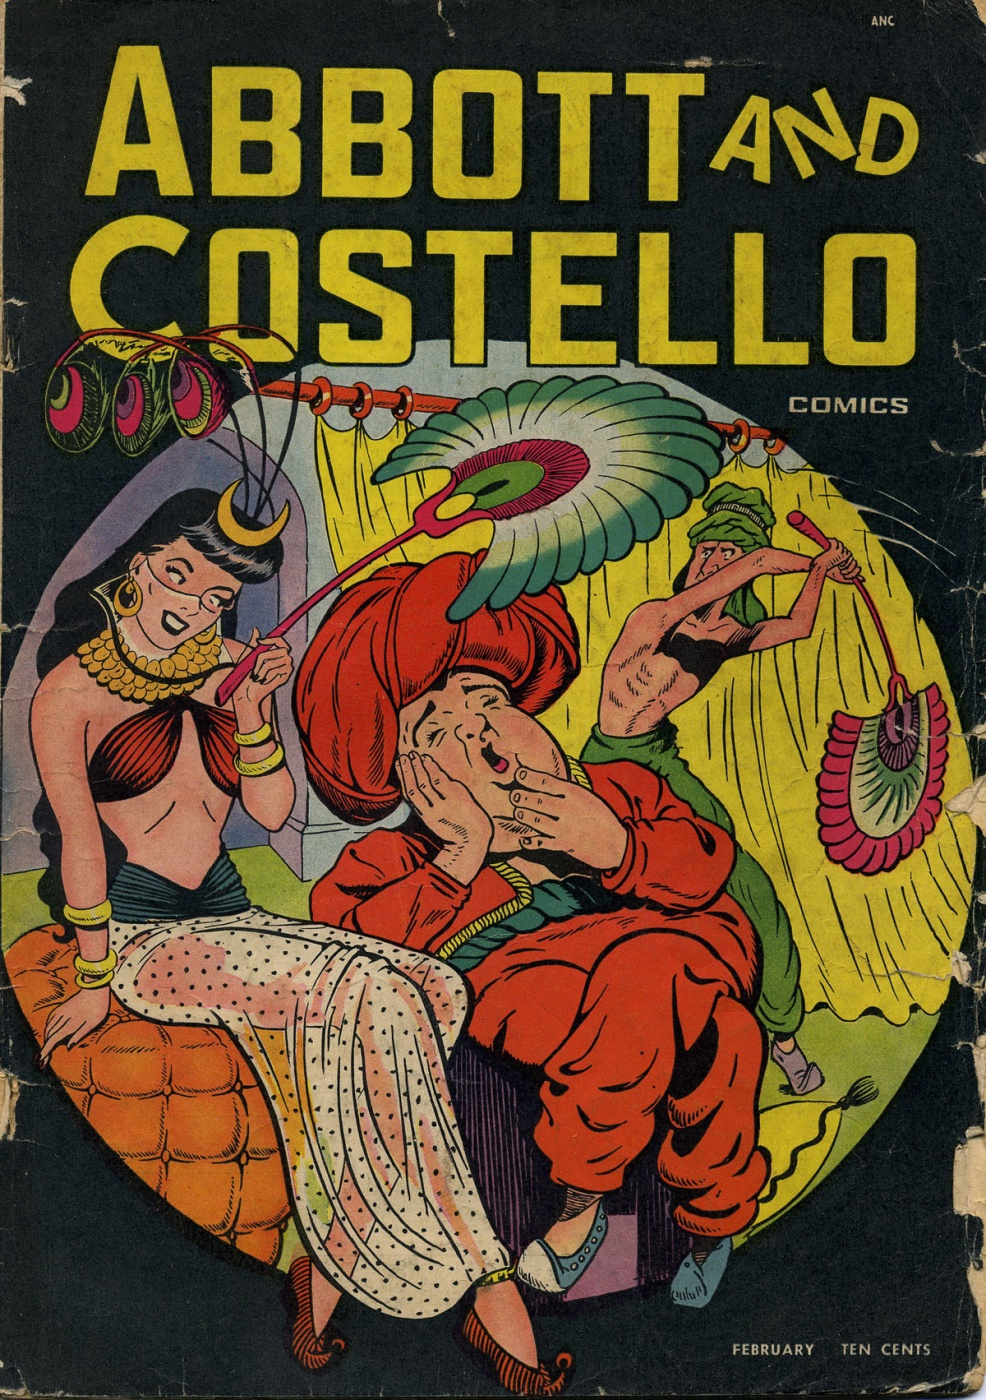 Funny Comic Strips: Abbot and Costello #5